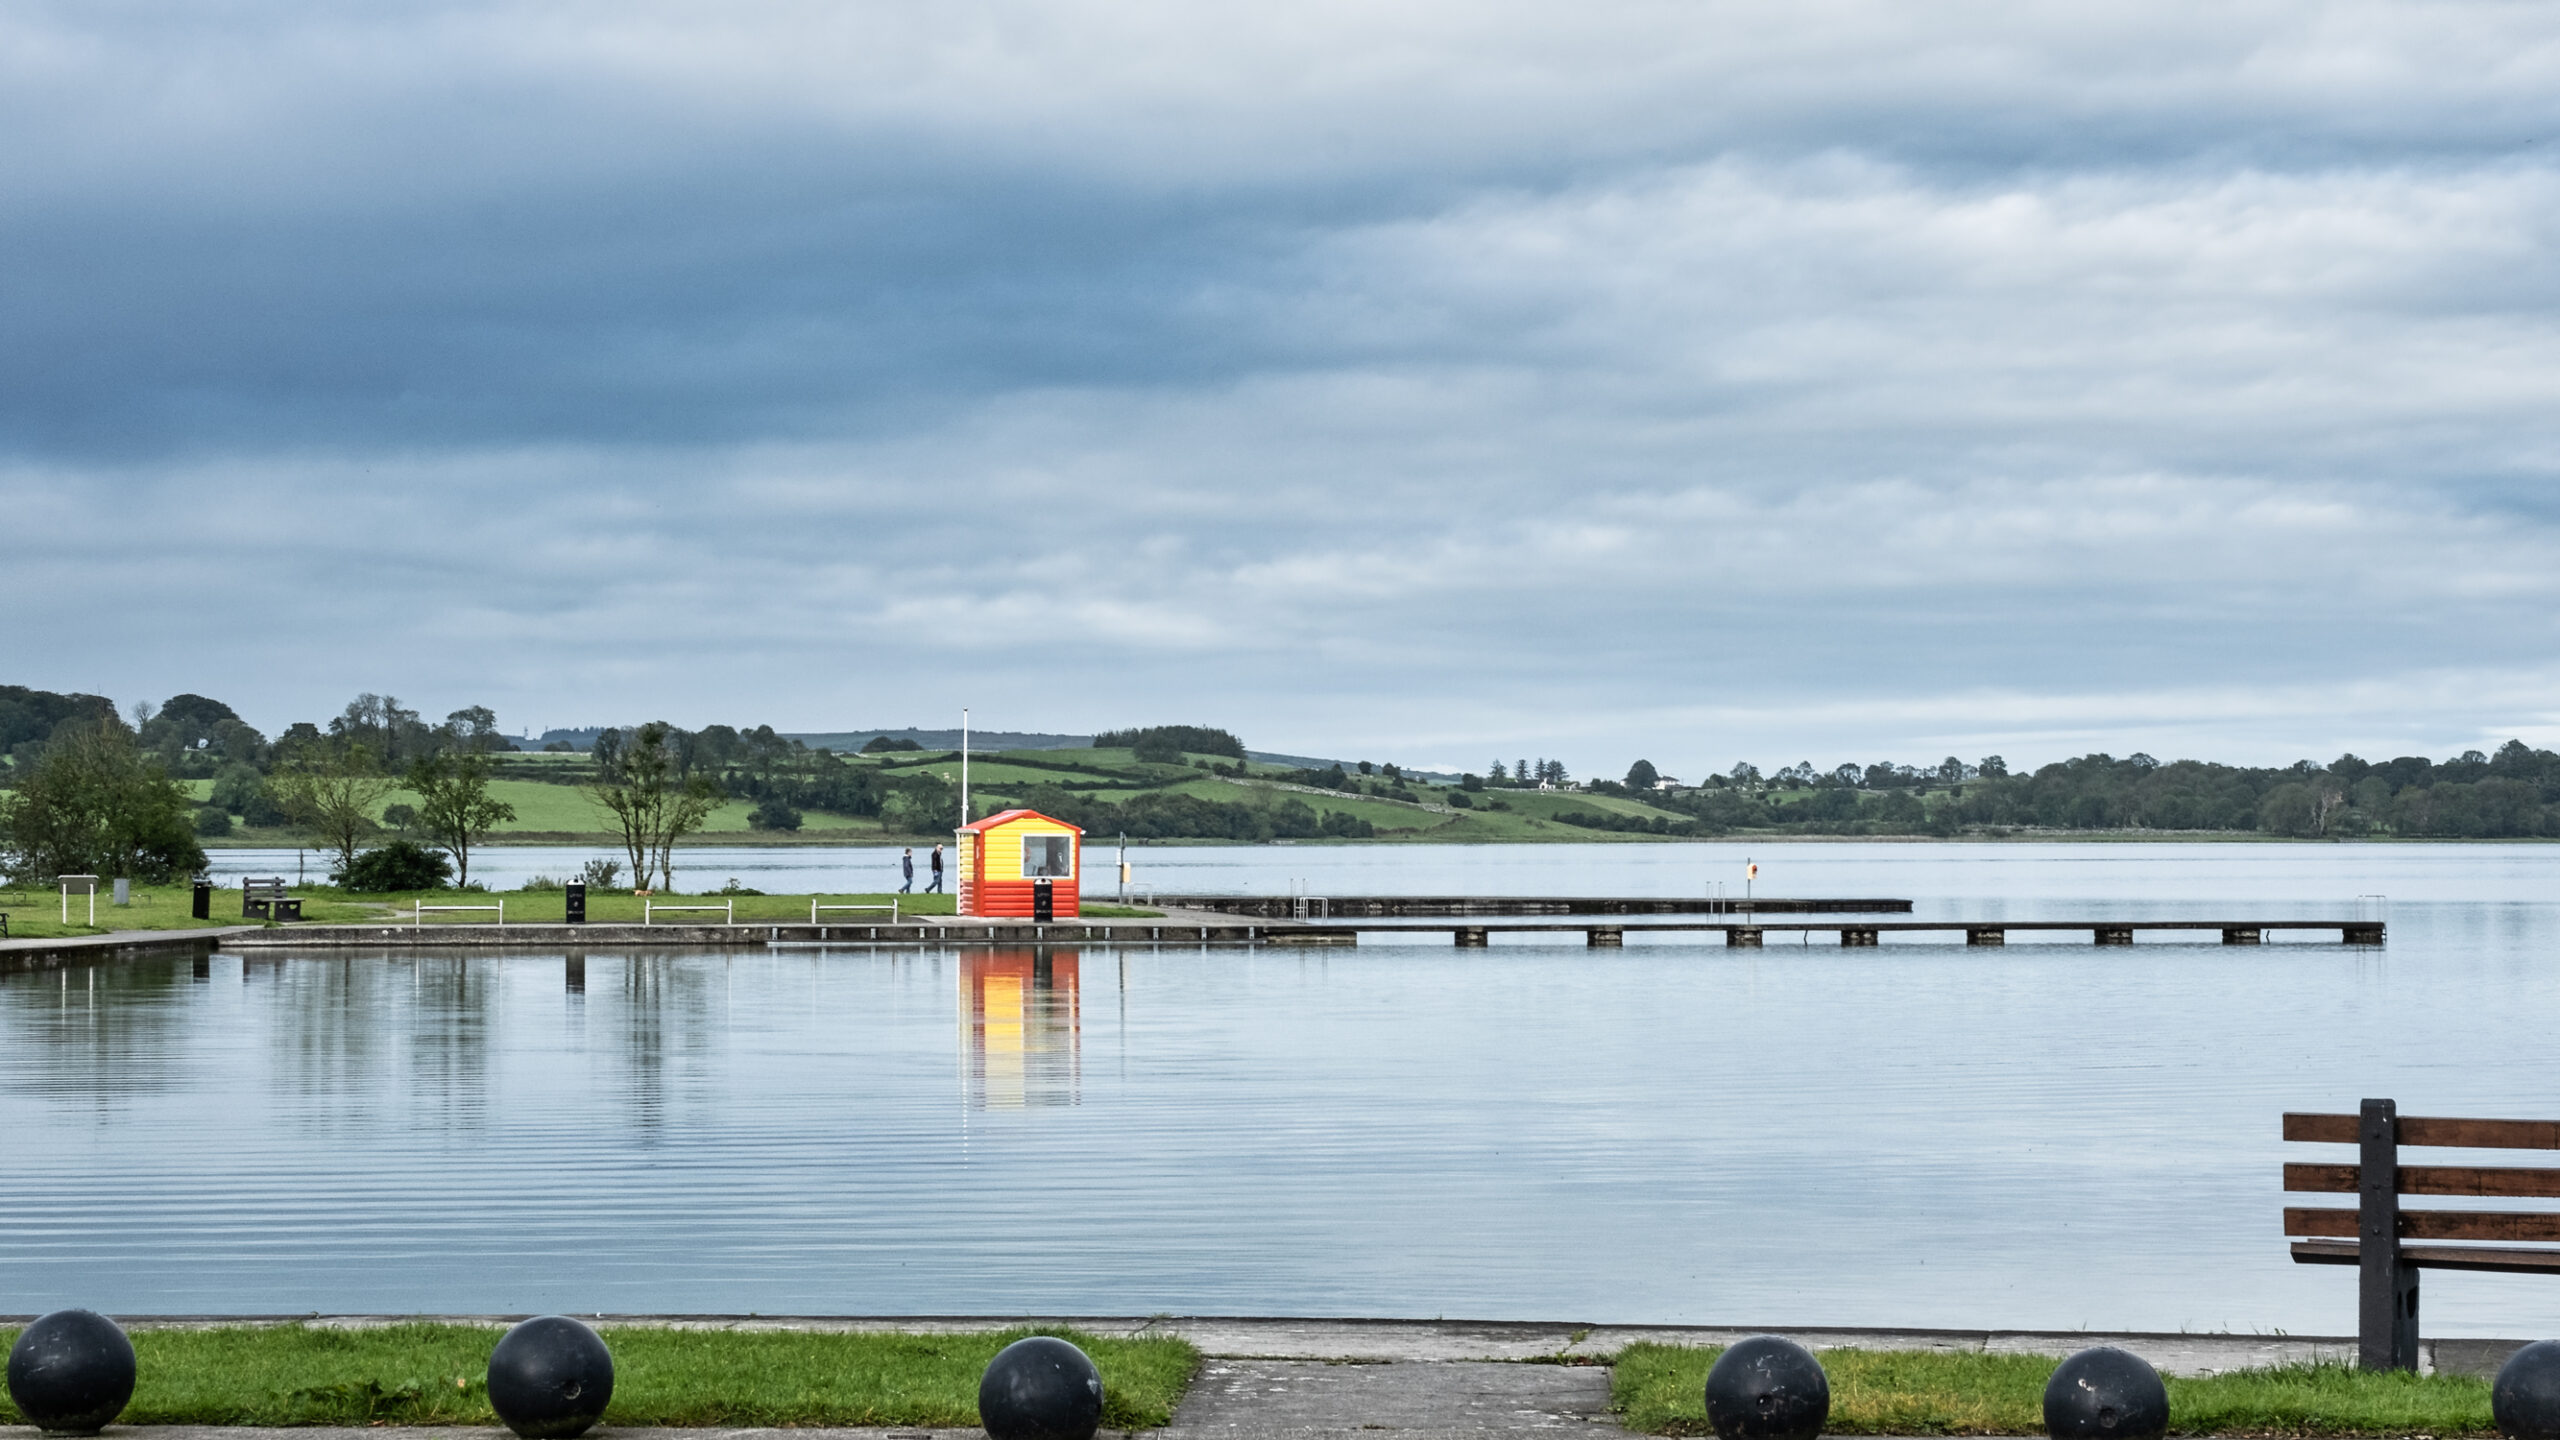 The Long Point, Loughrea